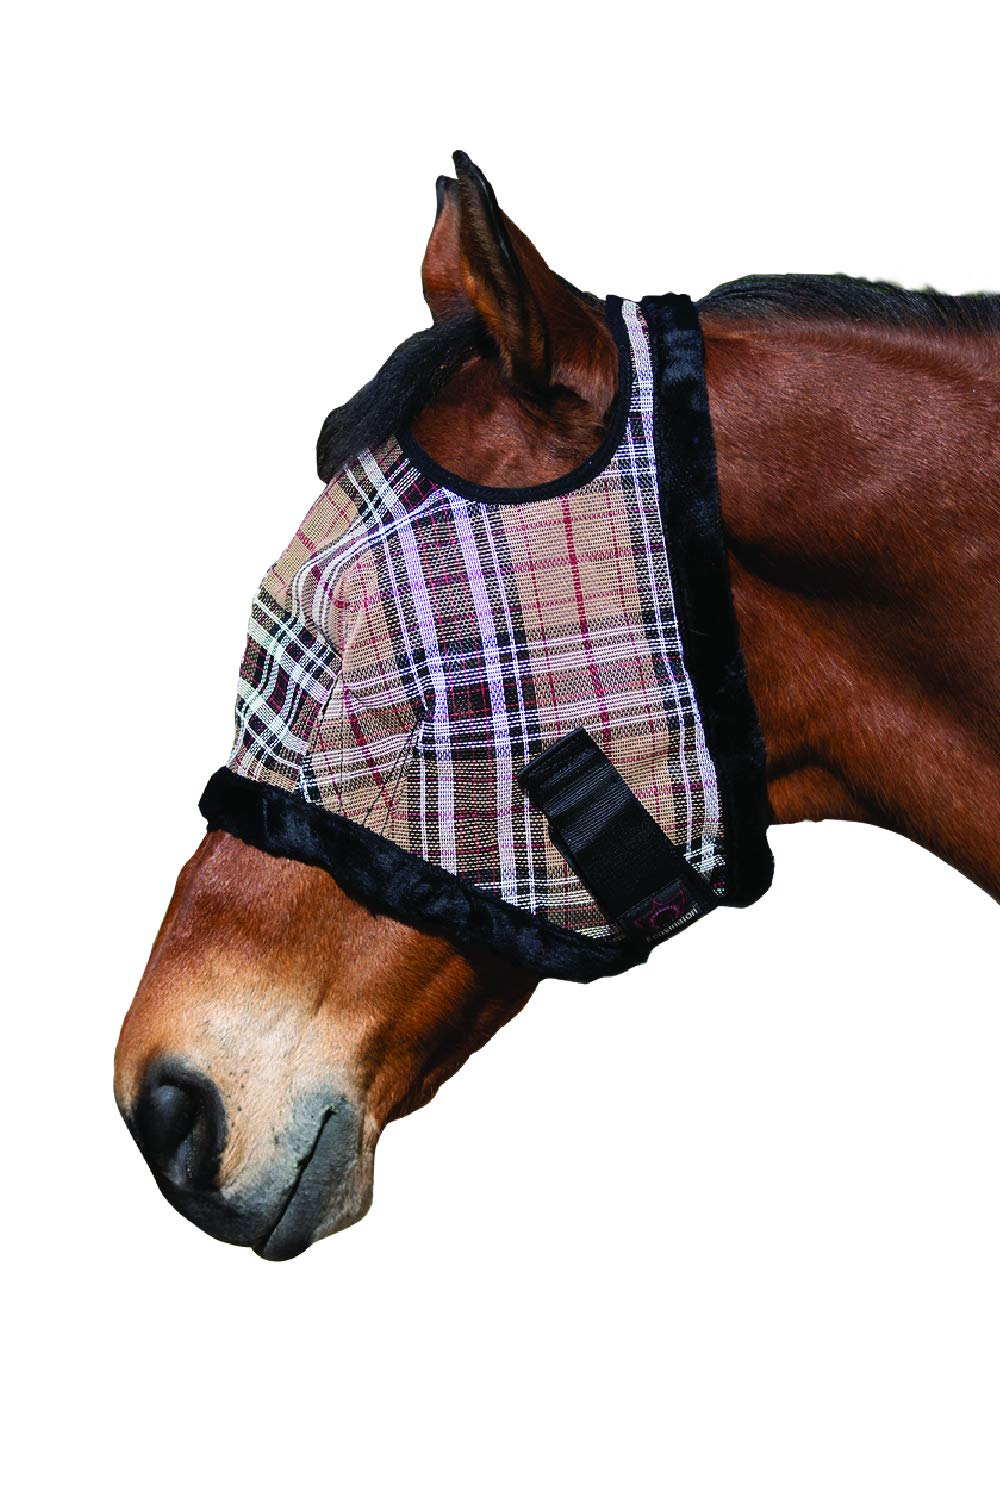 Kensington Fly Mask with Fleece Trim for Horses - Protects Face and Eyes From Flies and UV Rays While Allowing Full Visibility -  Breathable and Non Heat Transferring Makes it Perfect Year Round, Large, Deluxe Black Plaid by Kensington Protective Products